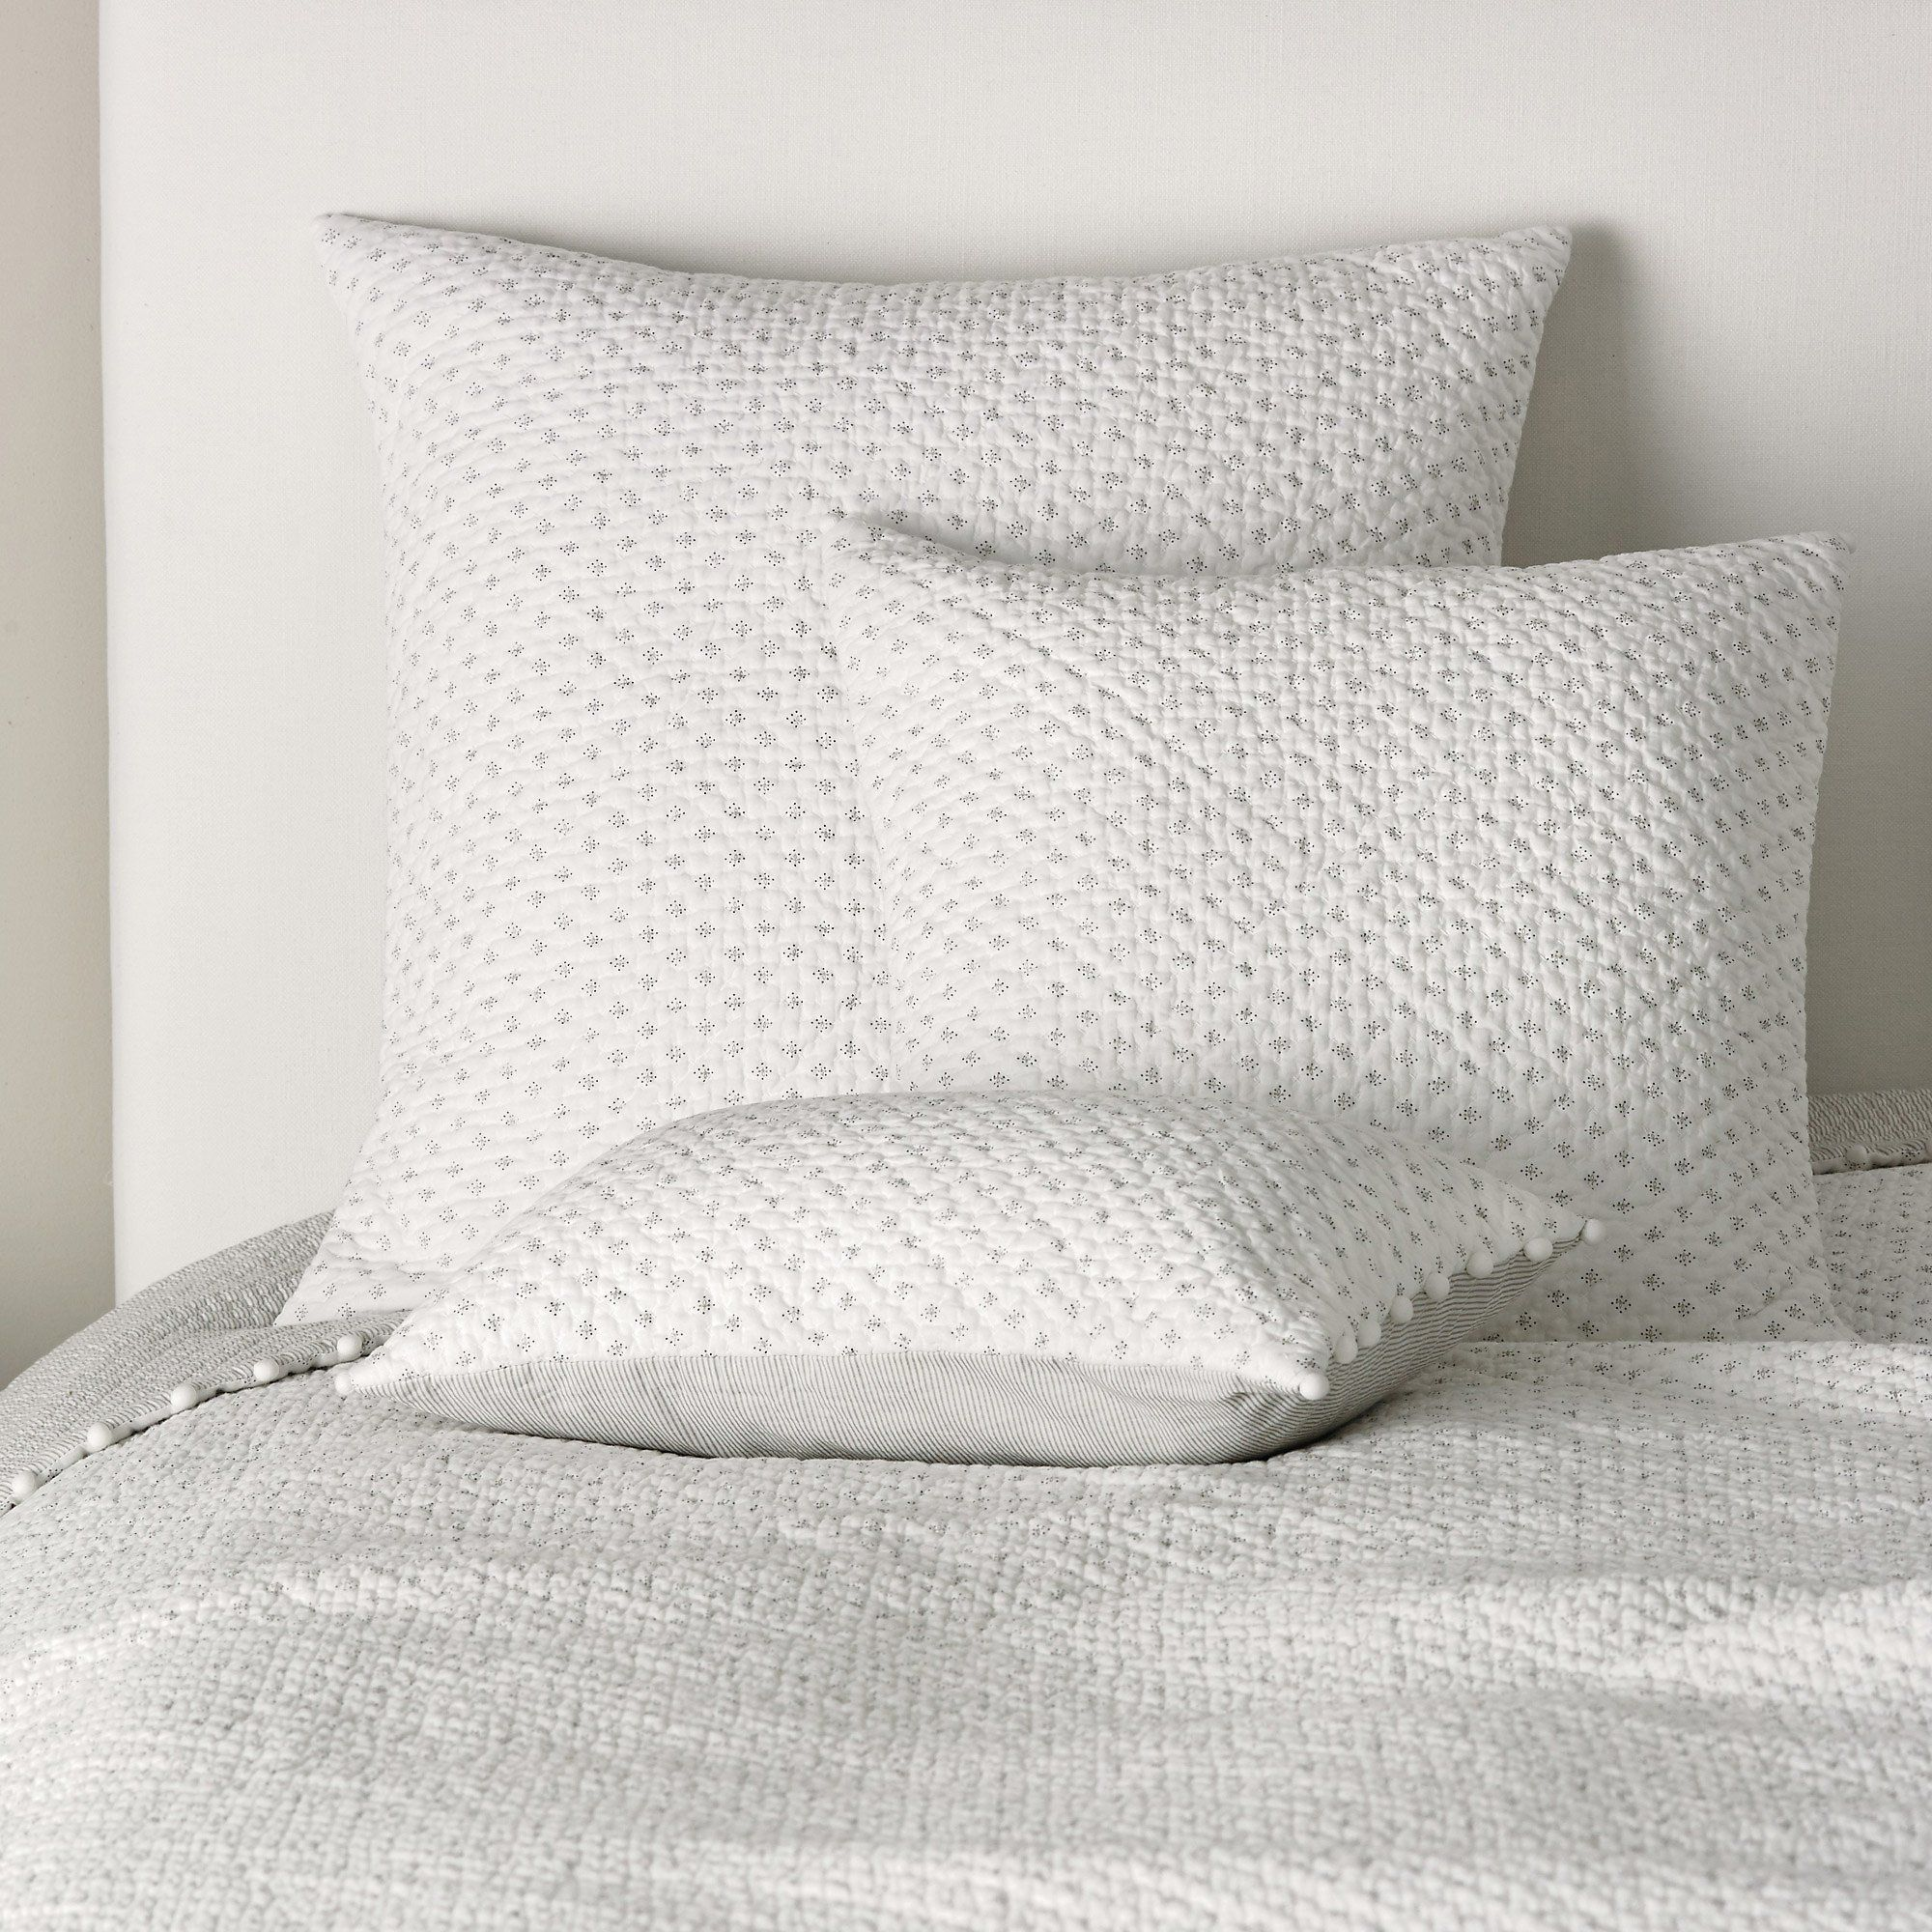 Brittany Quilts Cushion Covers Bed Cushions Bedspreads Throws The White Company